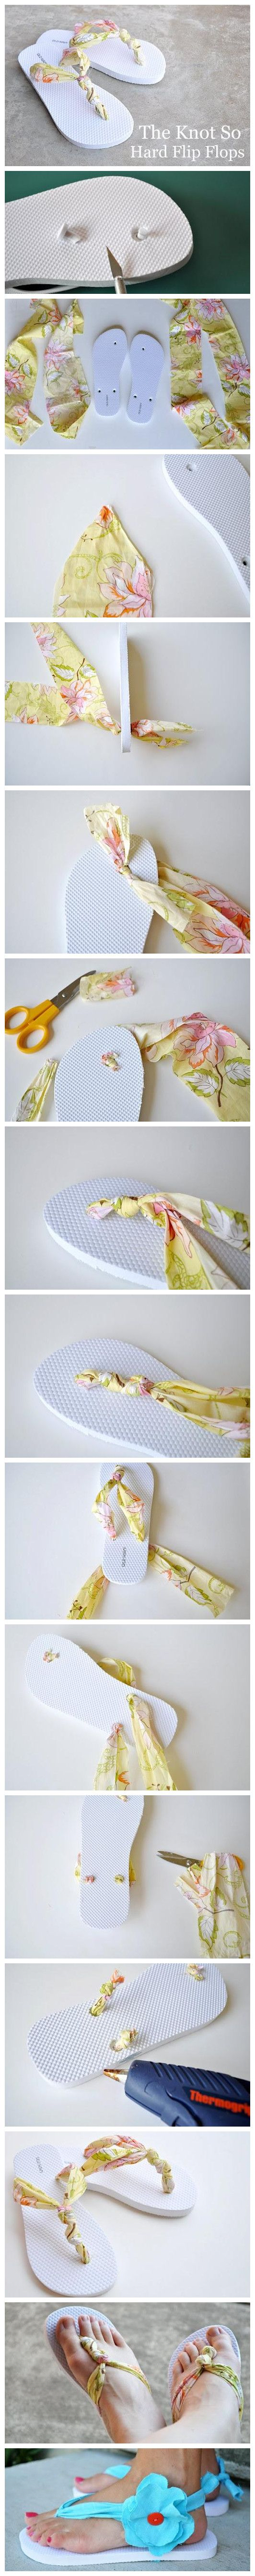 How cute!Flipflops, Good Ideas, Flip Flops Diy, Diy Crafts, The Knots, Cute Ideas, Cool Ideas, Old Navy, Diy Flip